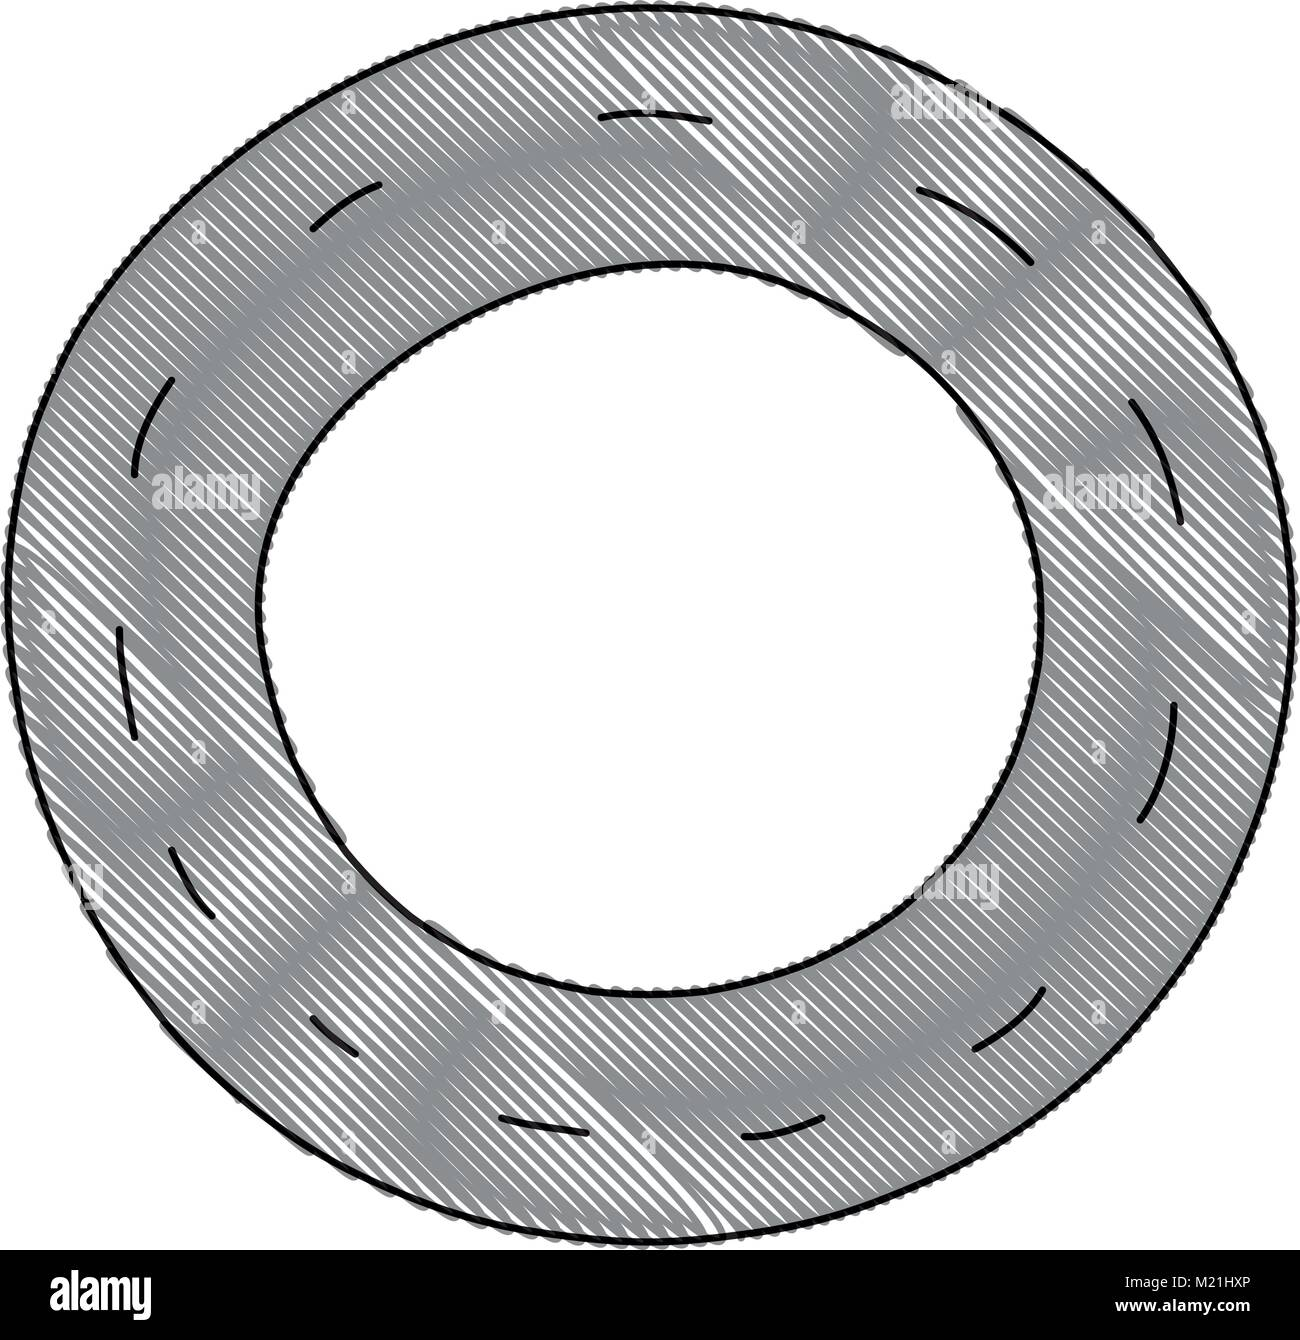 grated vehicle tire of rubber wheel design - Stock Vector